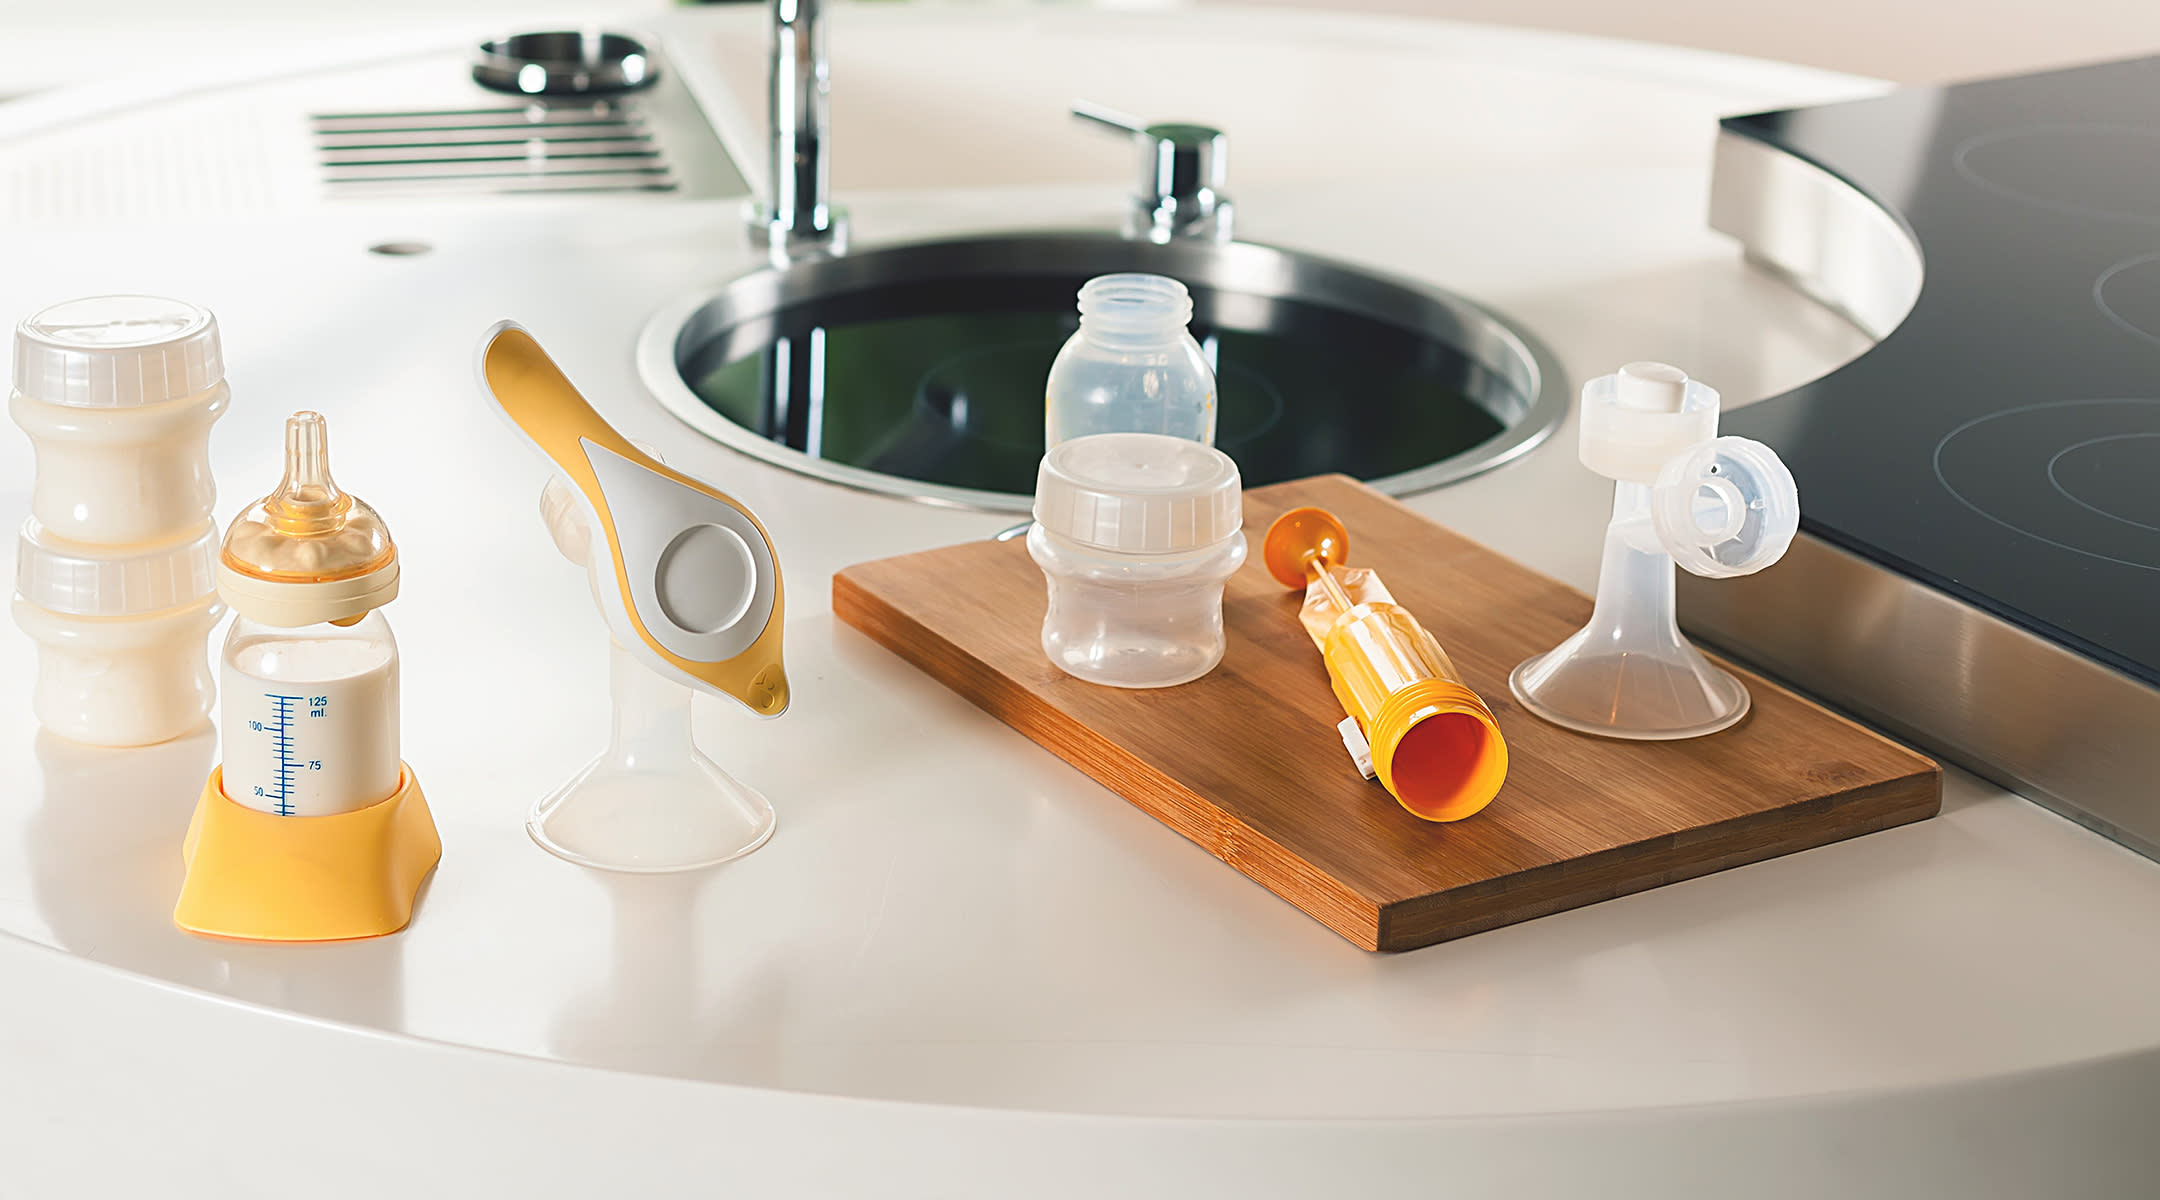 breast pump materials on kitchen counter